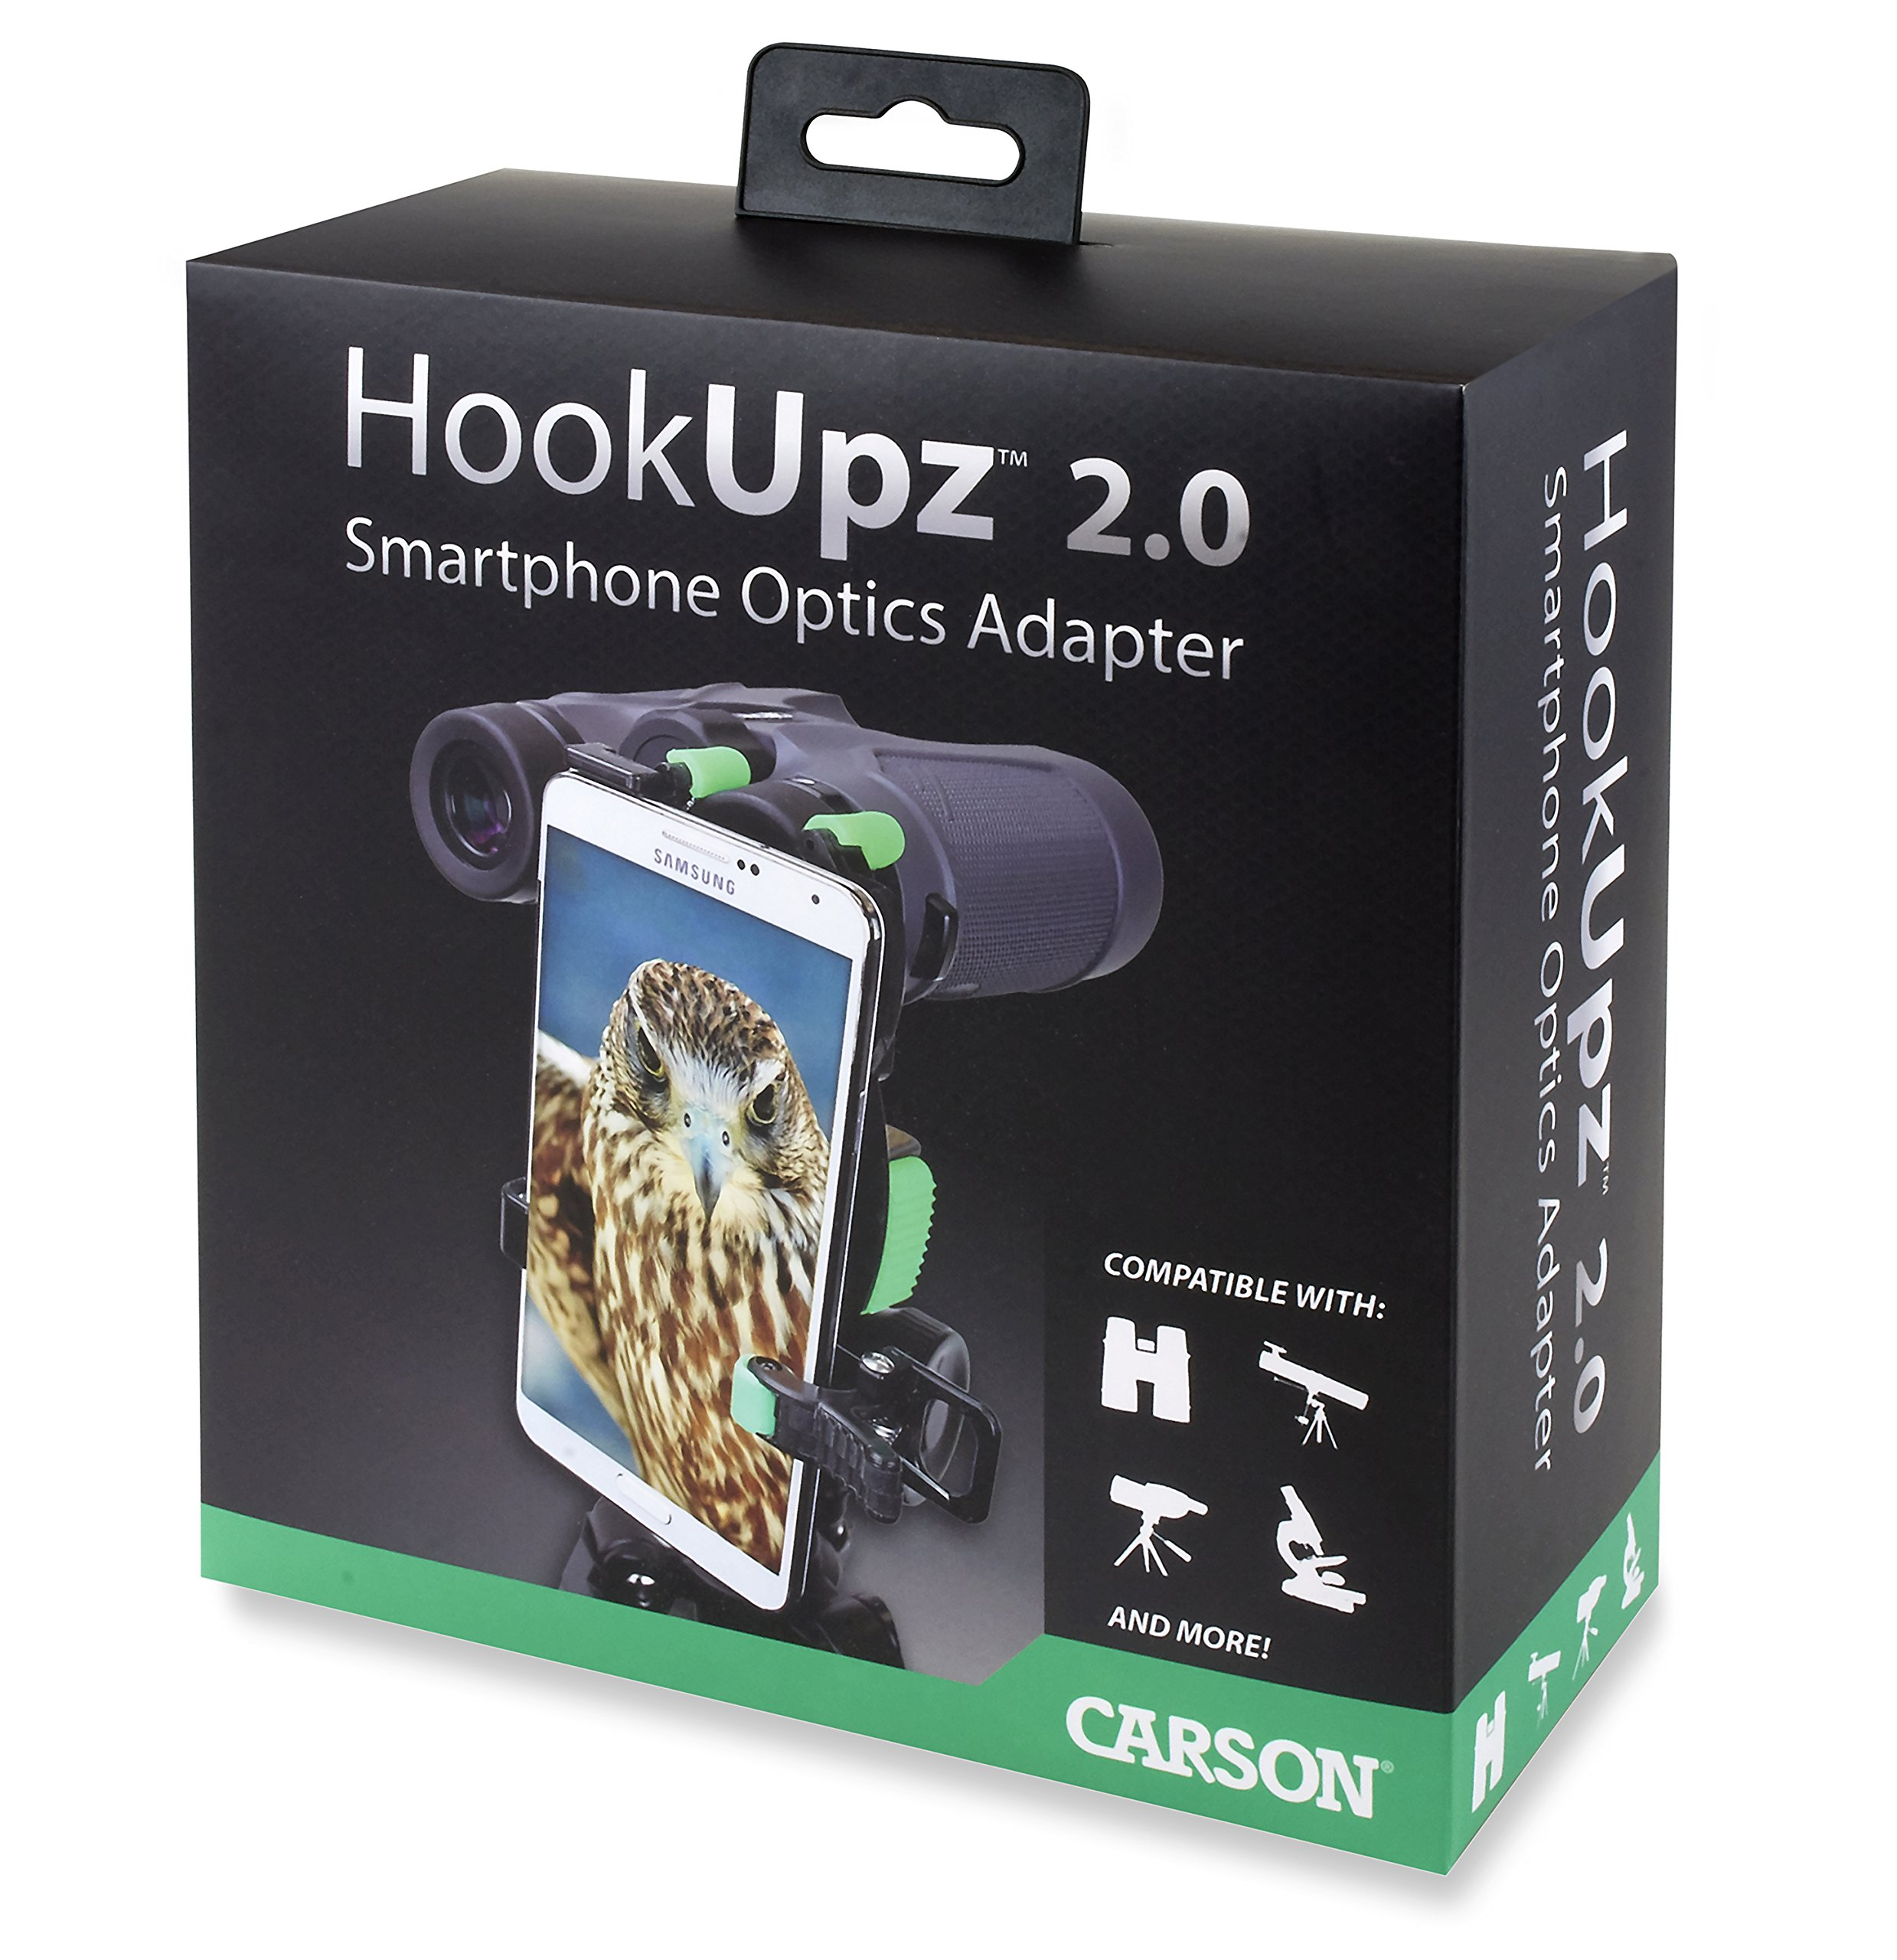 Carson HookUpz 2.0 Universal Smartphone Optics Digiscoping Adapter for Binoculars, Spotting Scopes, Telescopes, Microscopes, Monoculars and More (IS-200) by Carson